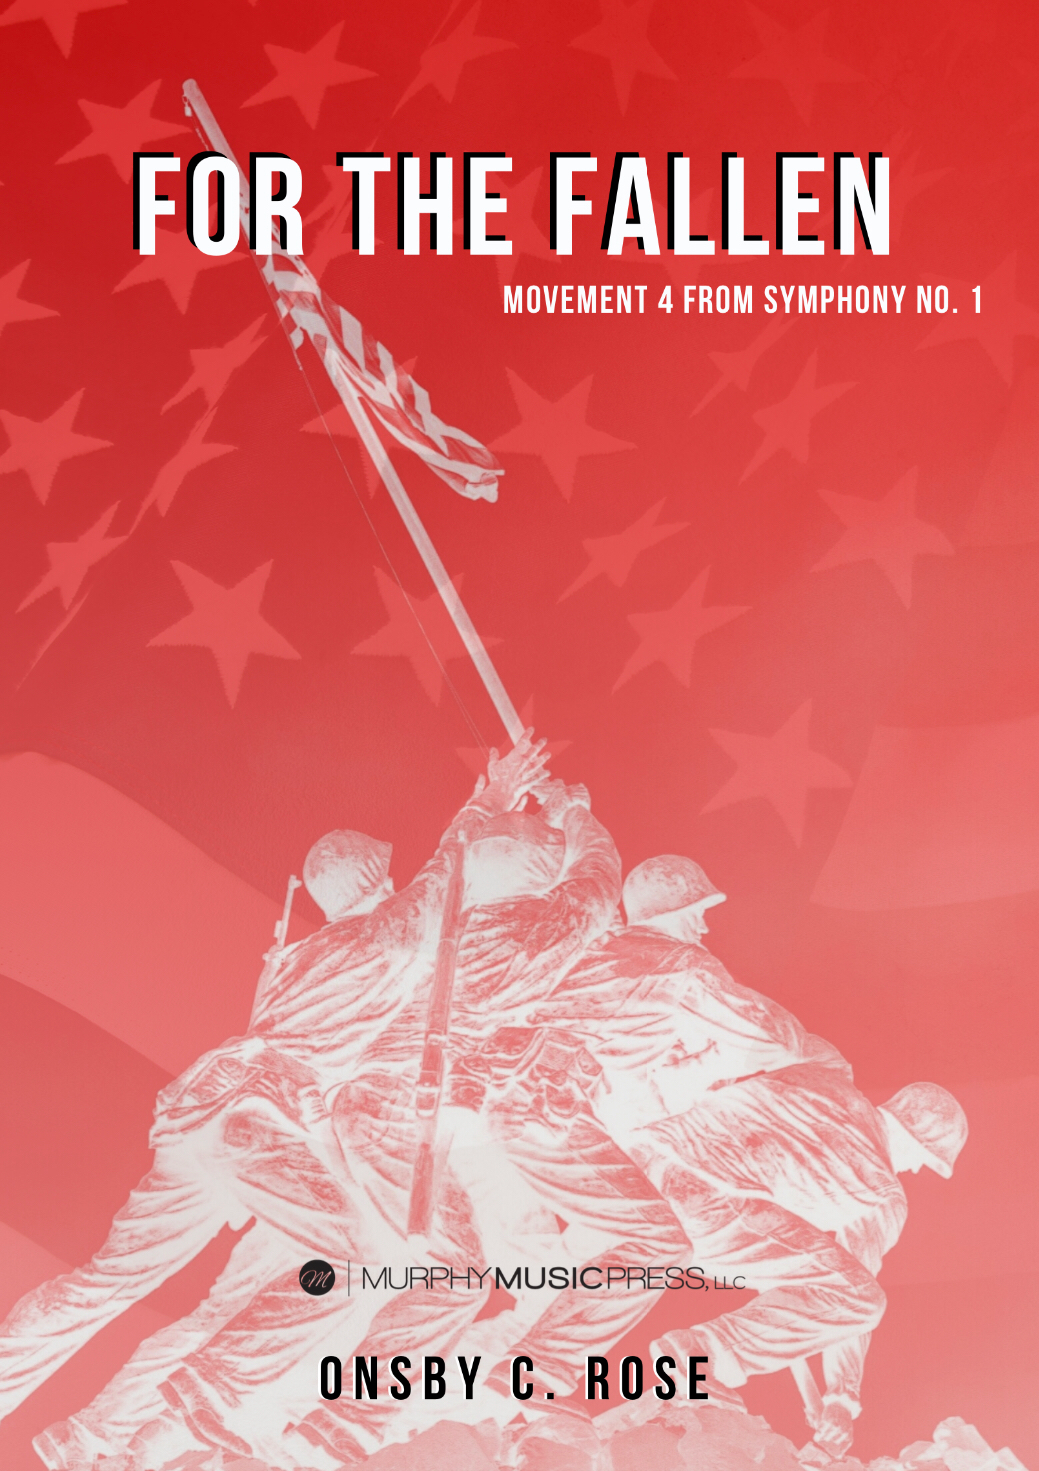 For The Fallen (Score Only) by Onsby C. Rose